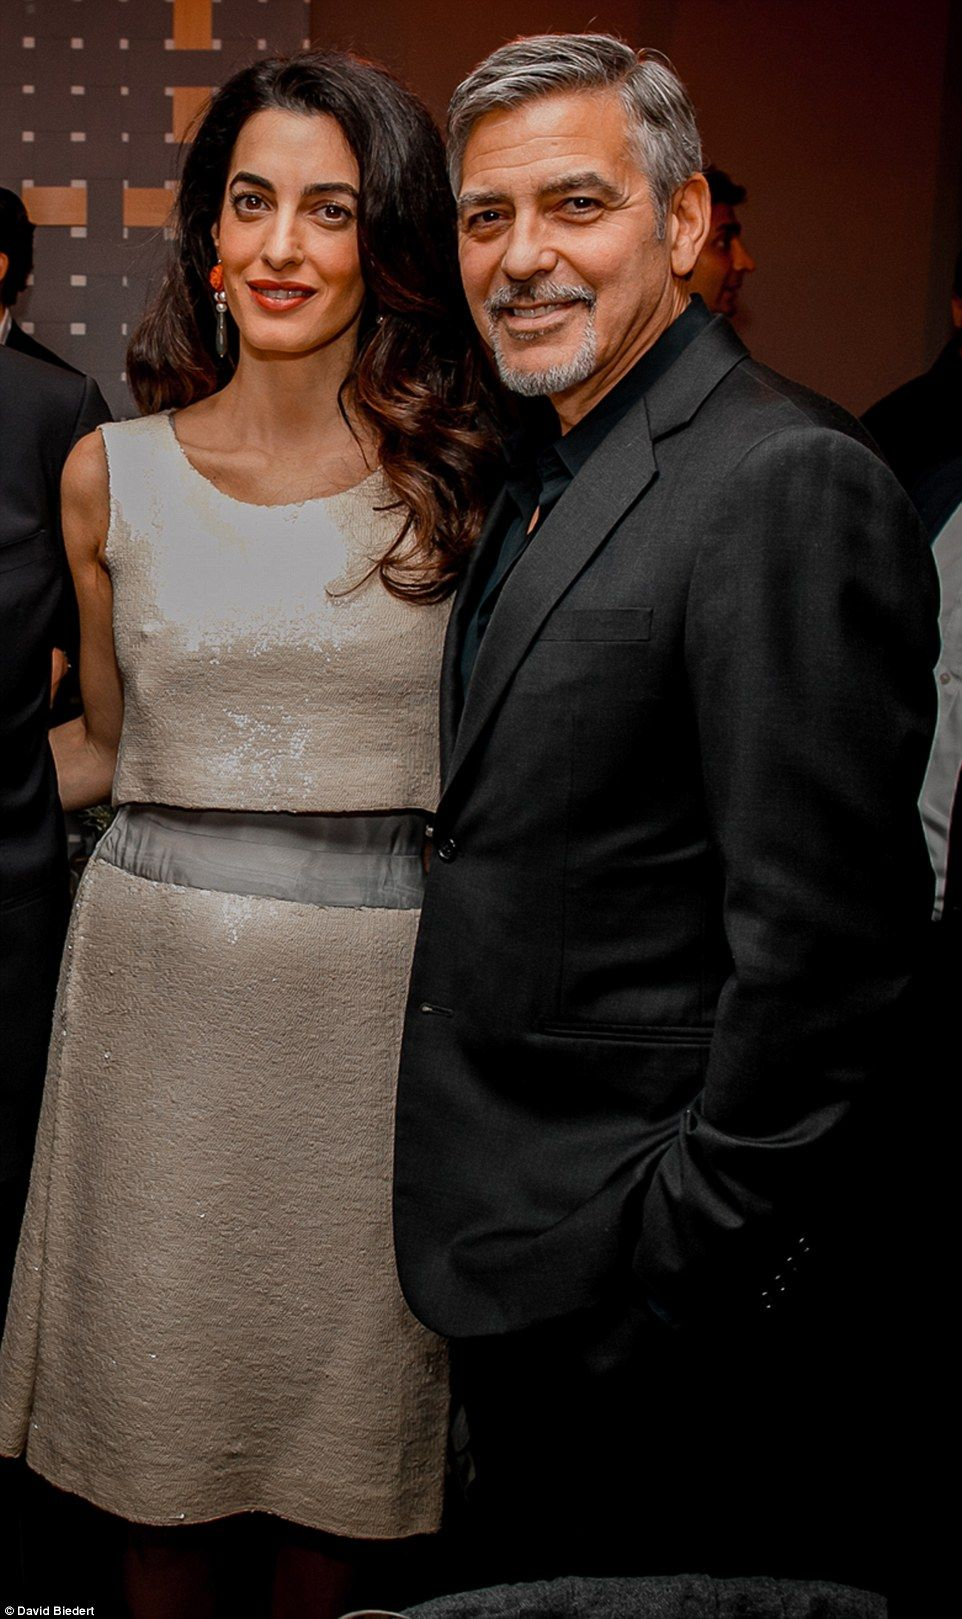 George Clooney and his darling officially sealed their relationship 09/29/2014 84